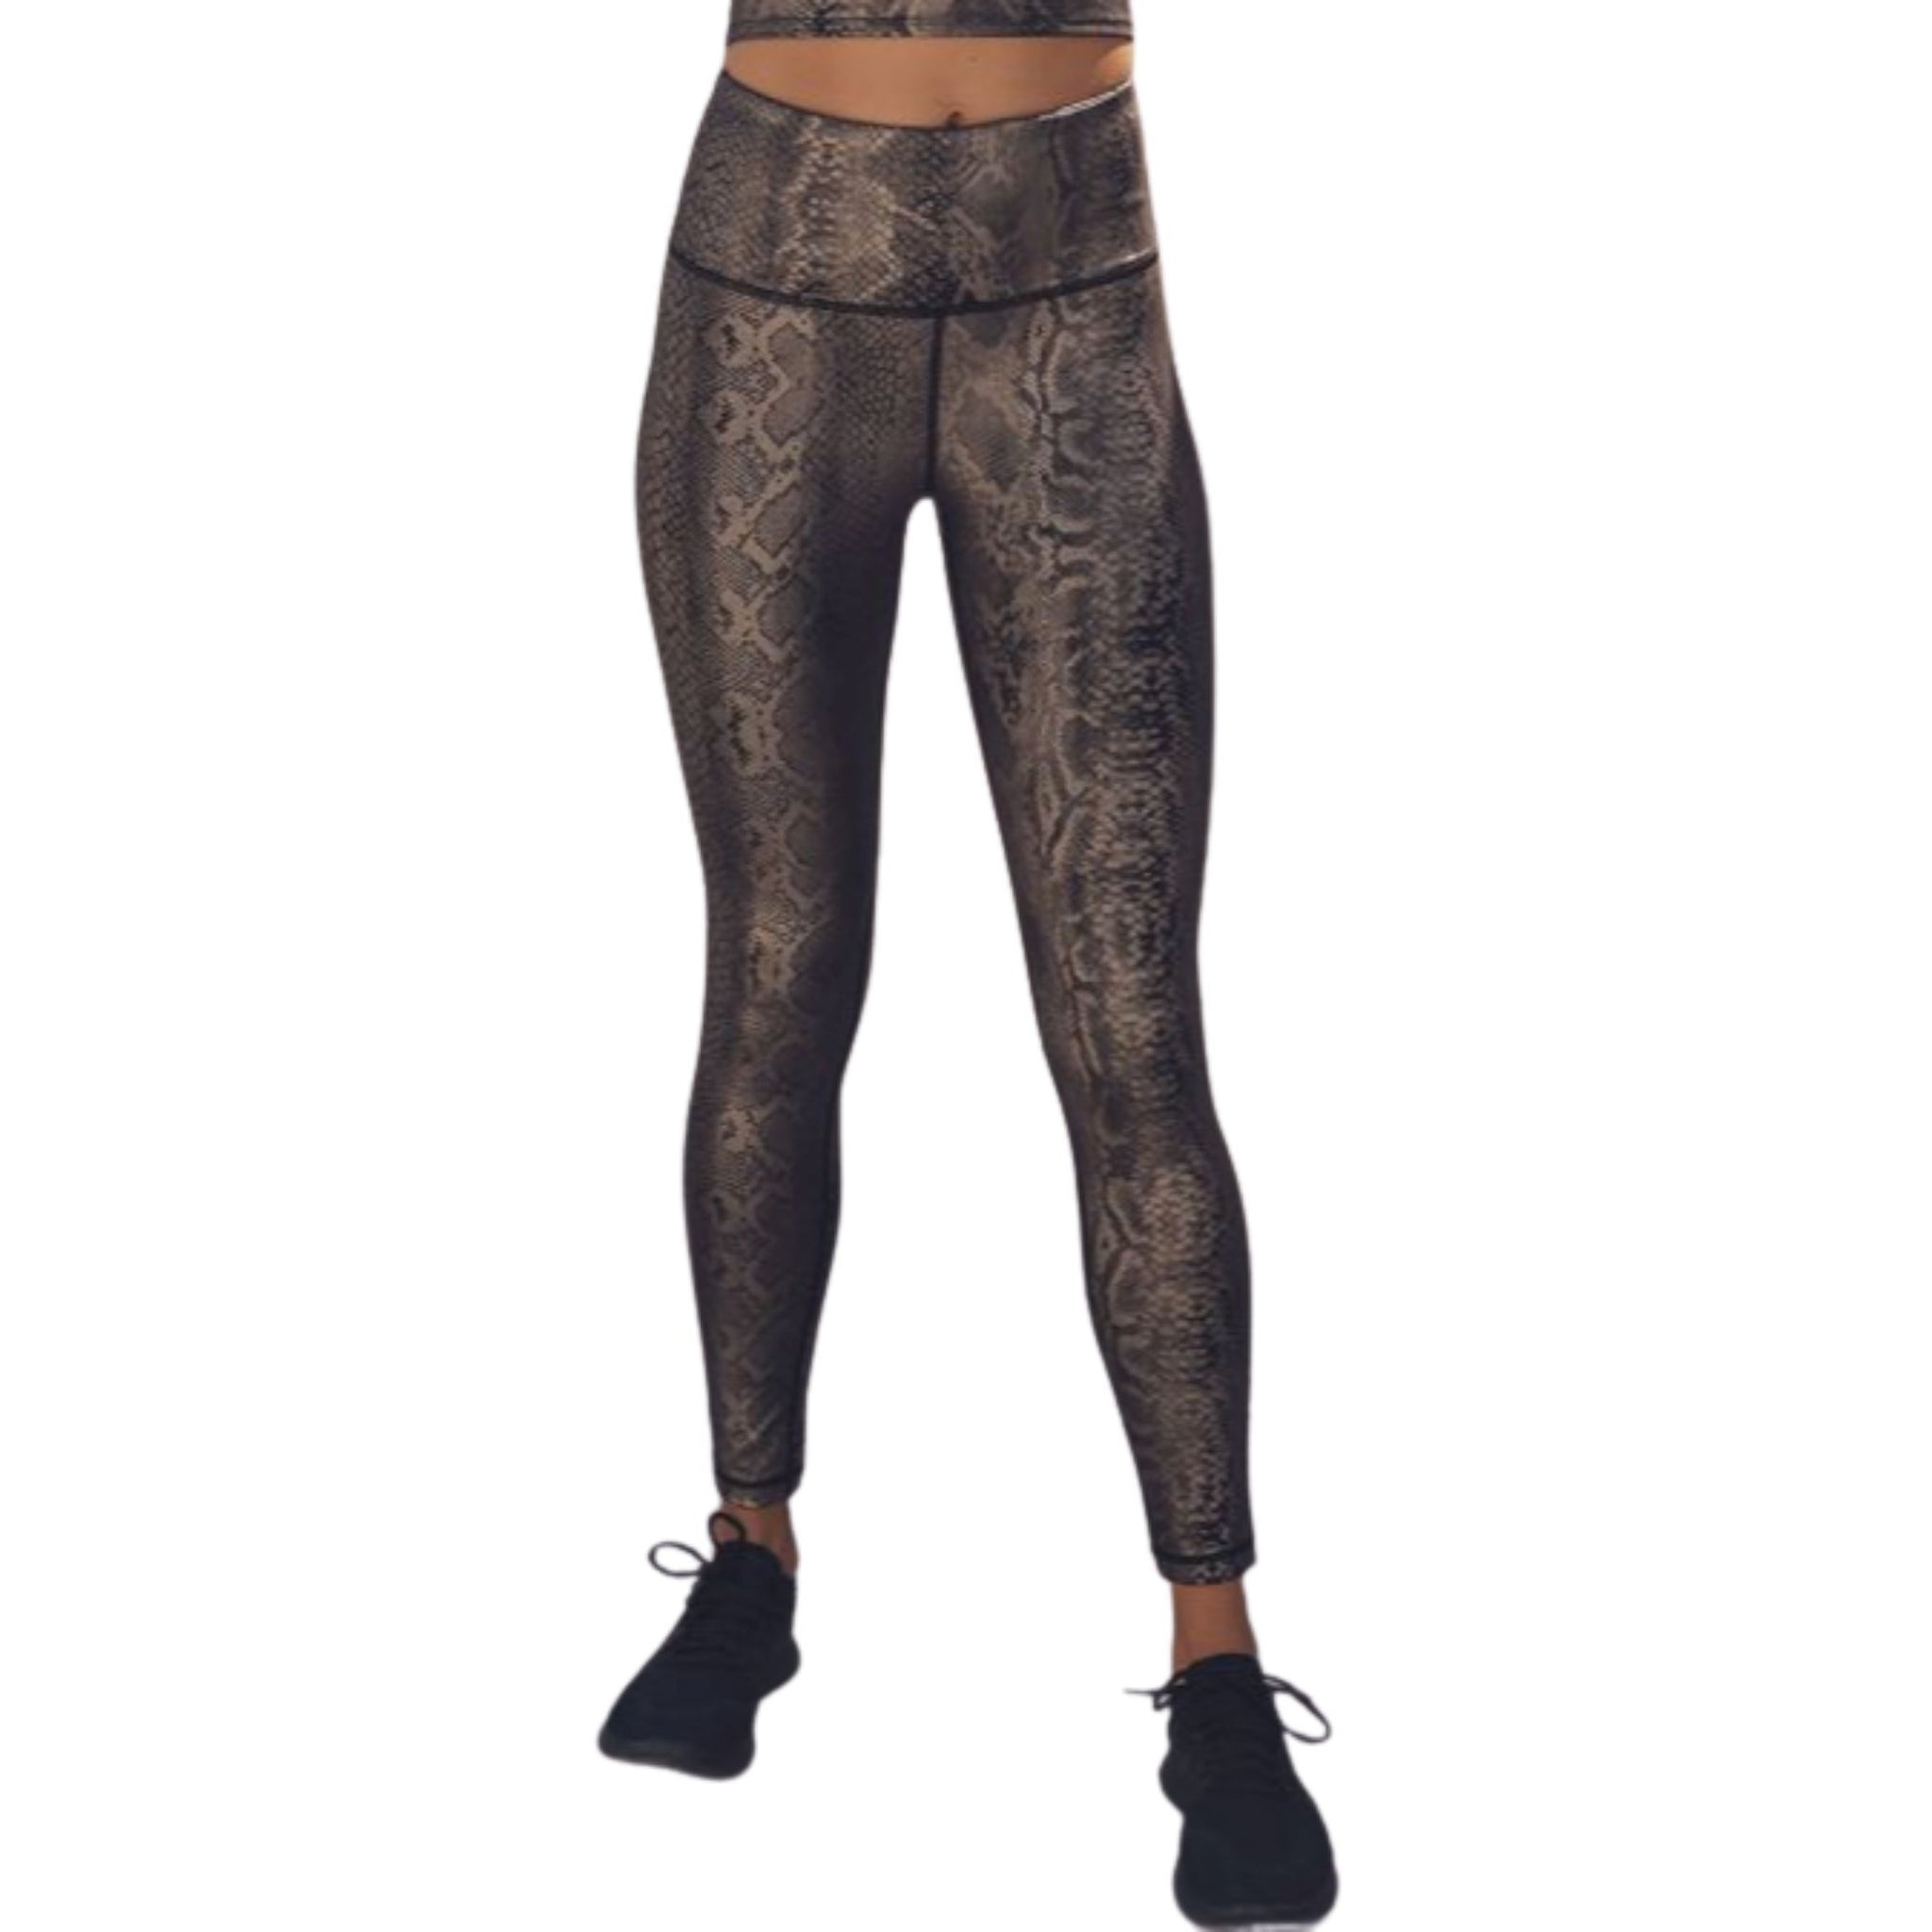 Copperhead Metallic Leggings